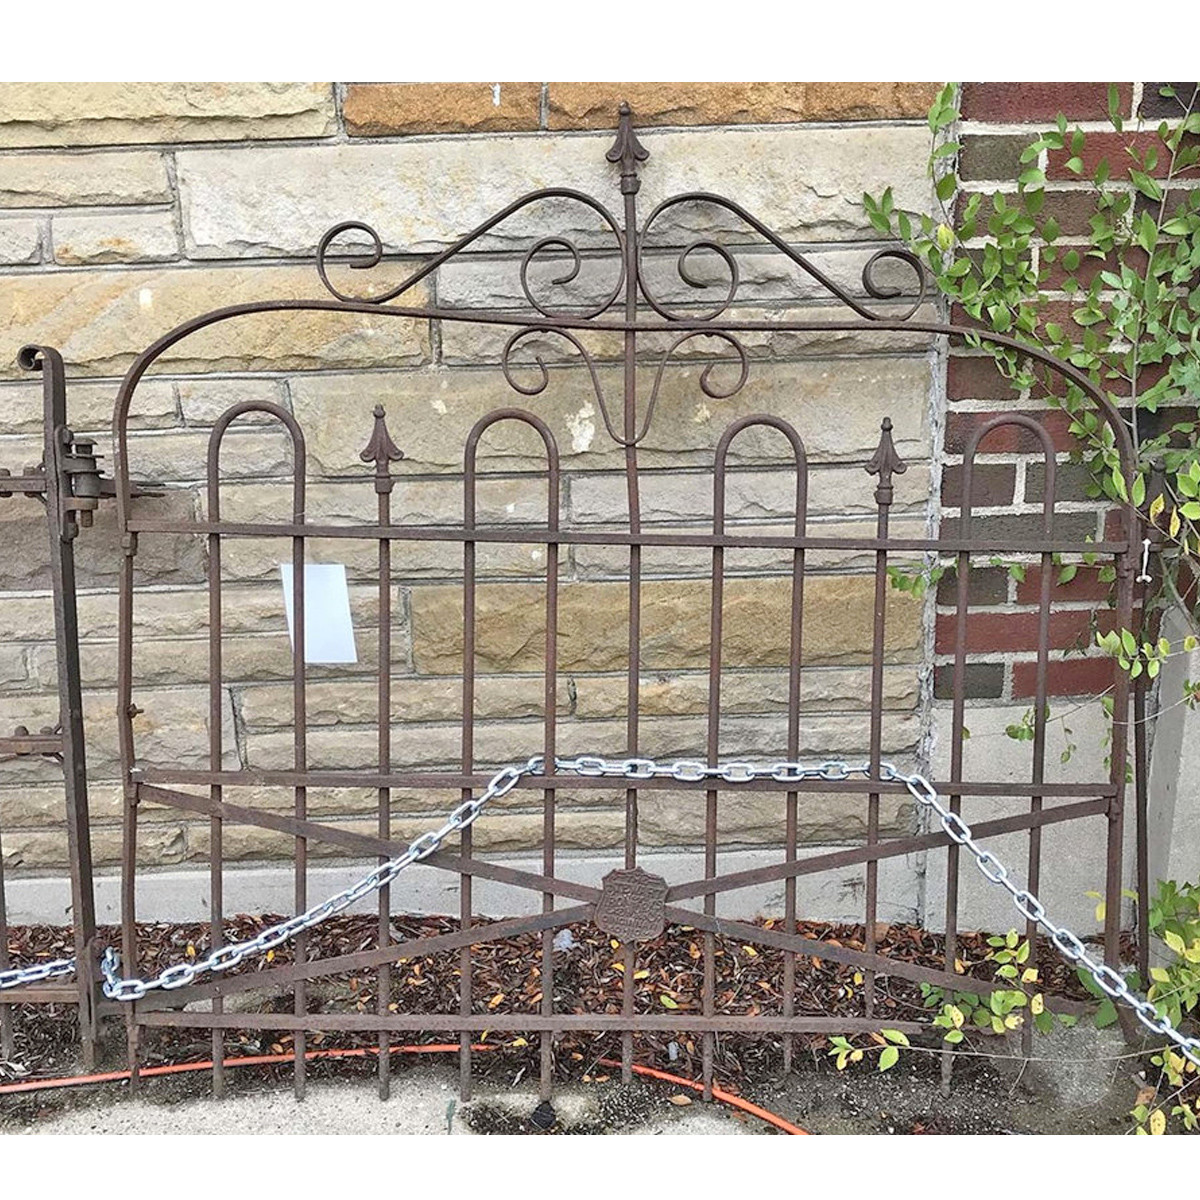 A17094 - Antique Wrought Iron Gate